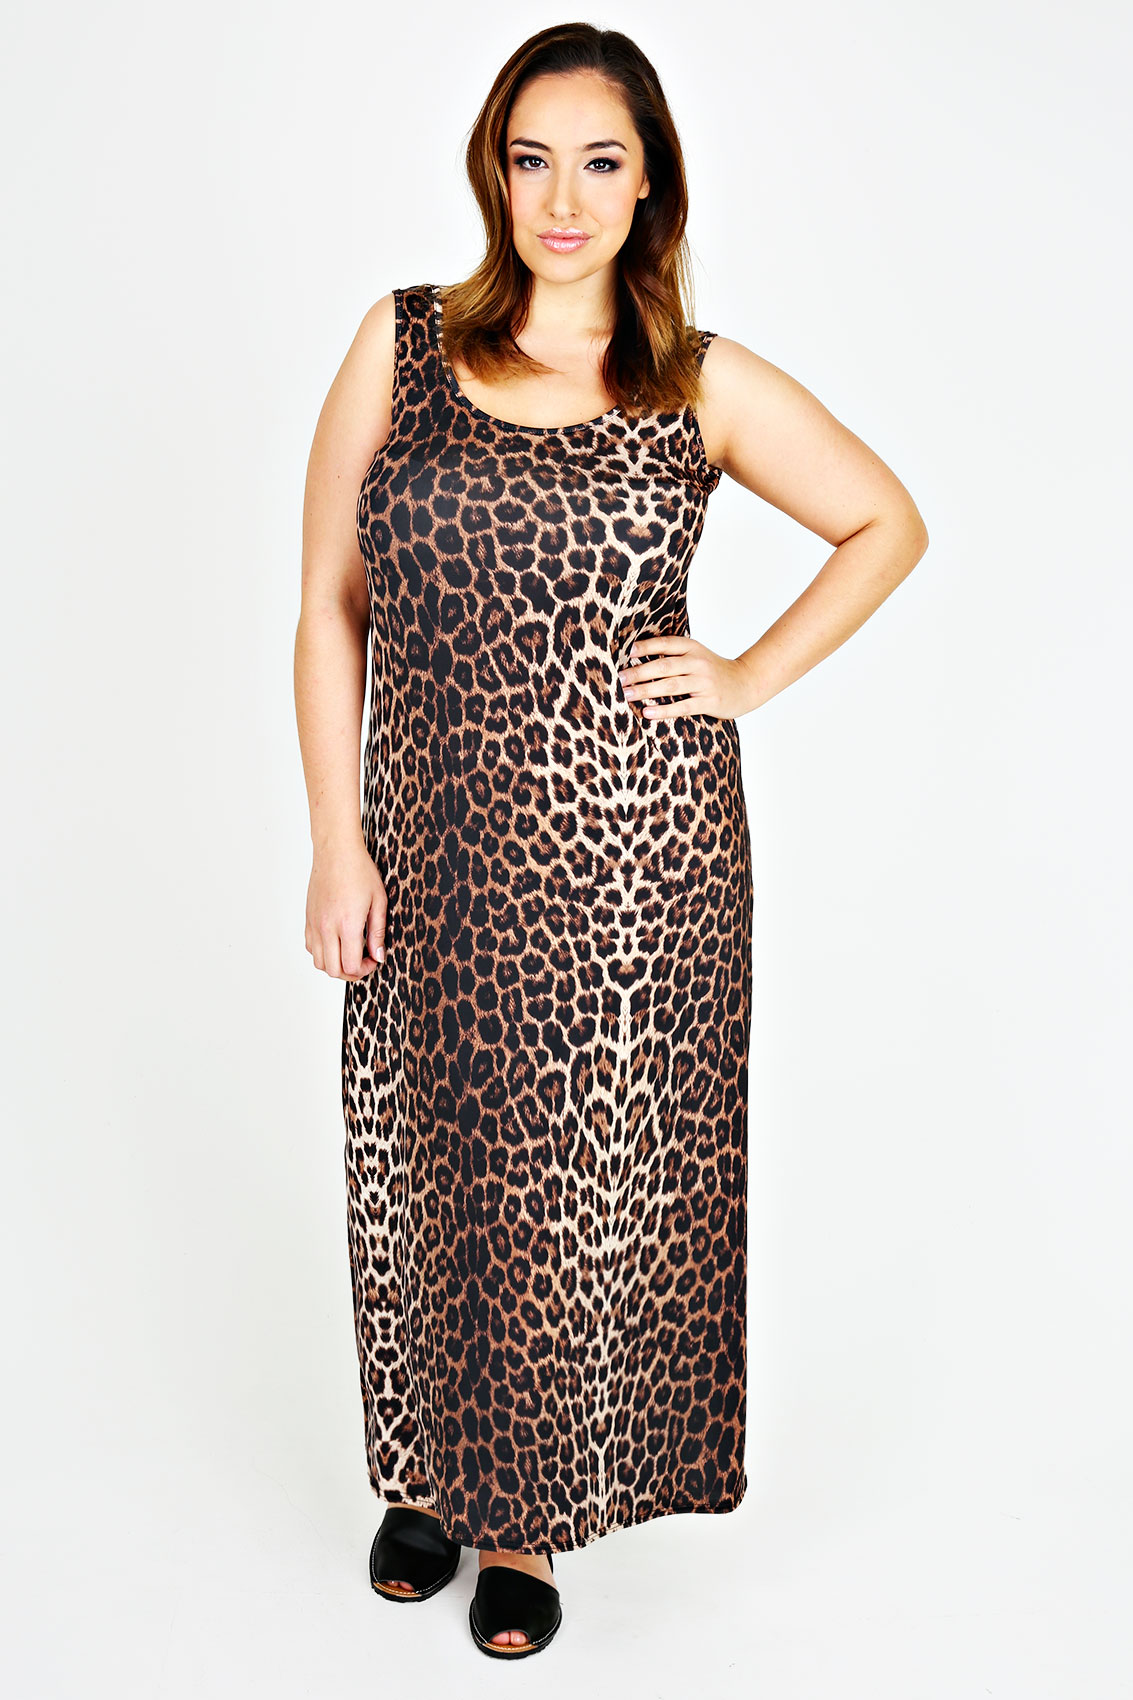 Discover maxi dresses with ASOS. Shop the range of maxi dresses and long styles from evening to long sleeve dresses. Find a maxi dress for every occasion. ASOS DESIGN Carly button through maxi dress in satin leopard print. £ Lipsy cowl neck maxi dress in navy. £ ASOS DESIGN Vanessa Backless Halter Pleated Maxi Dress.